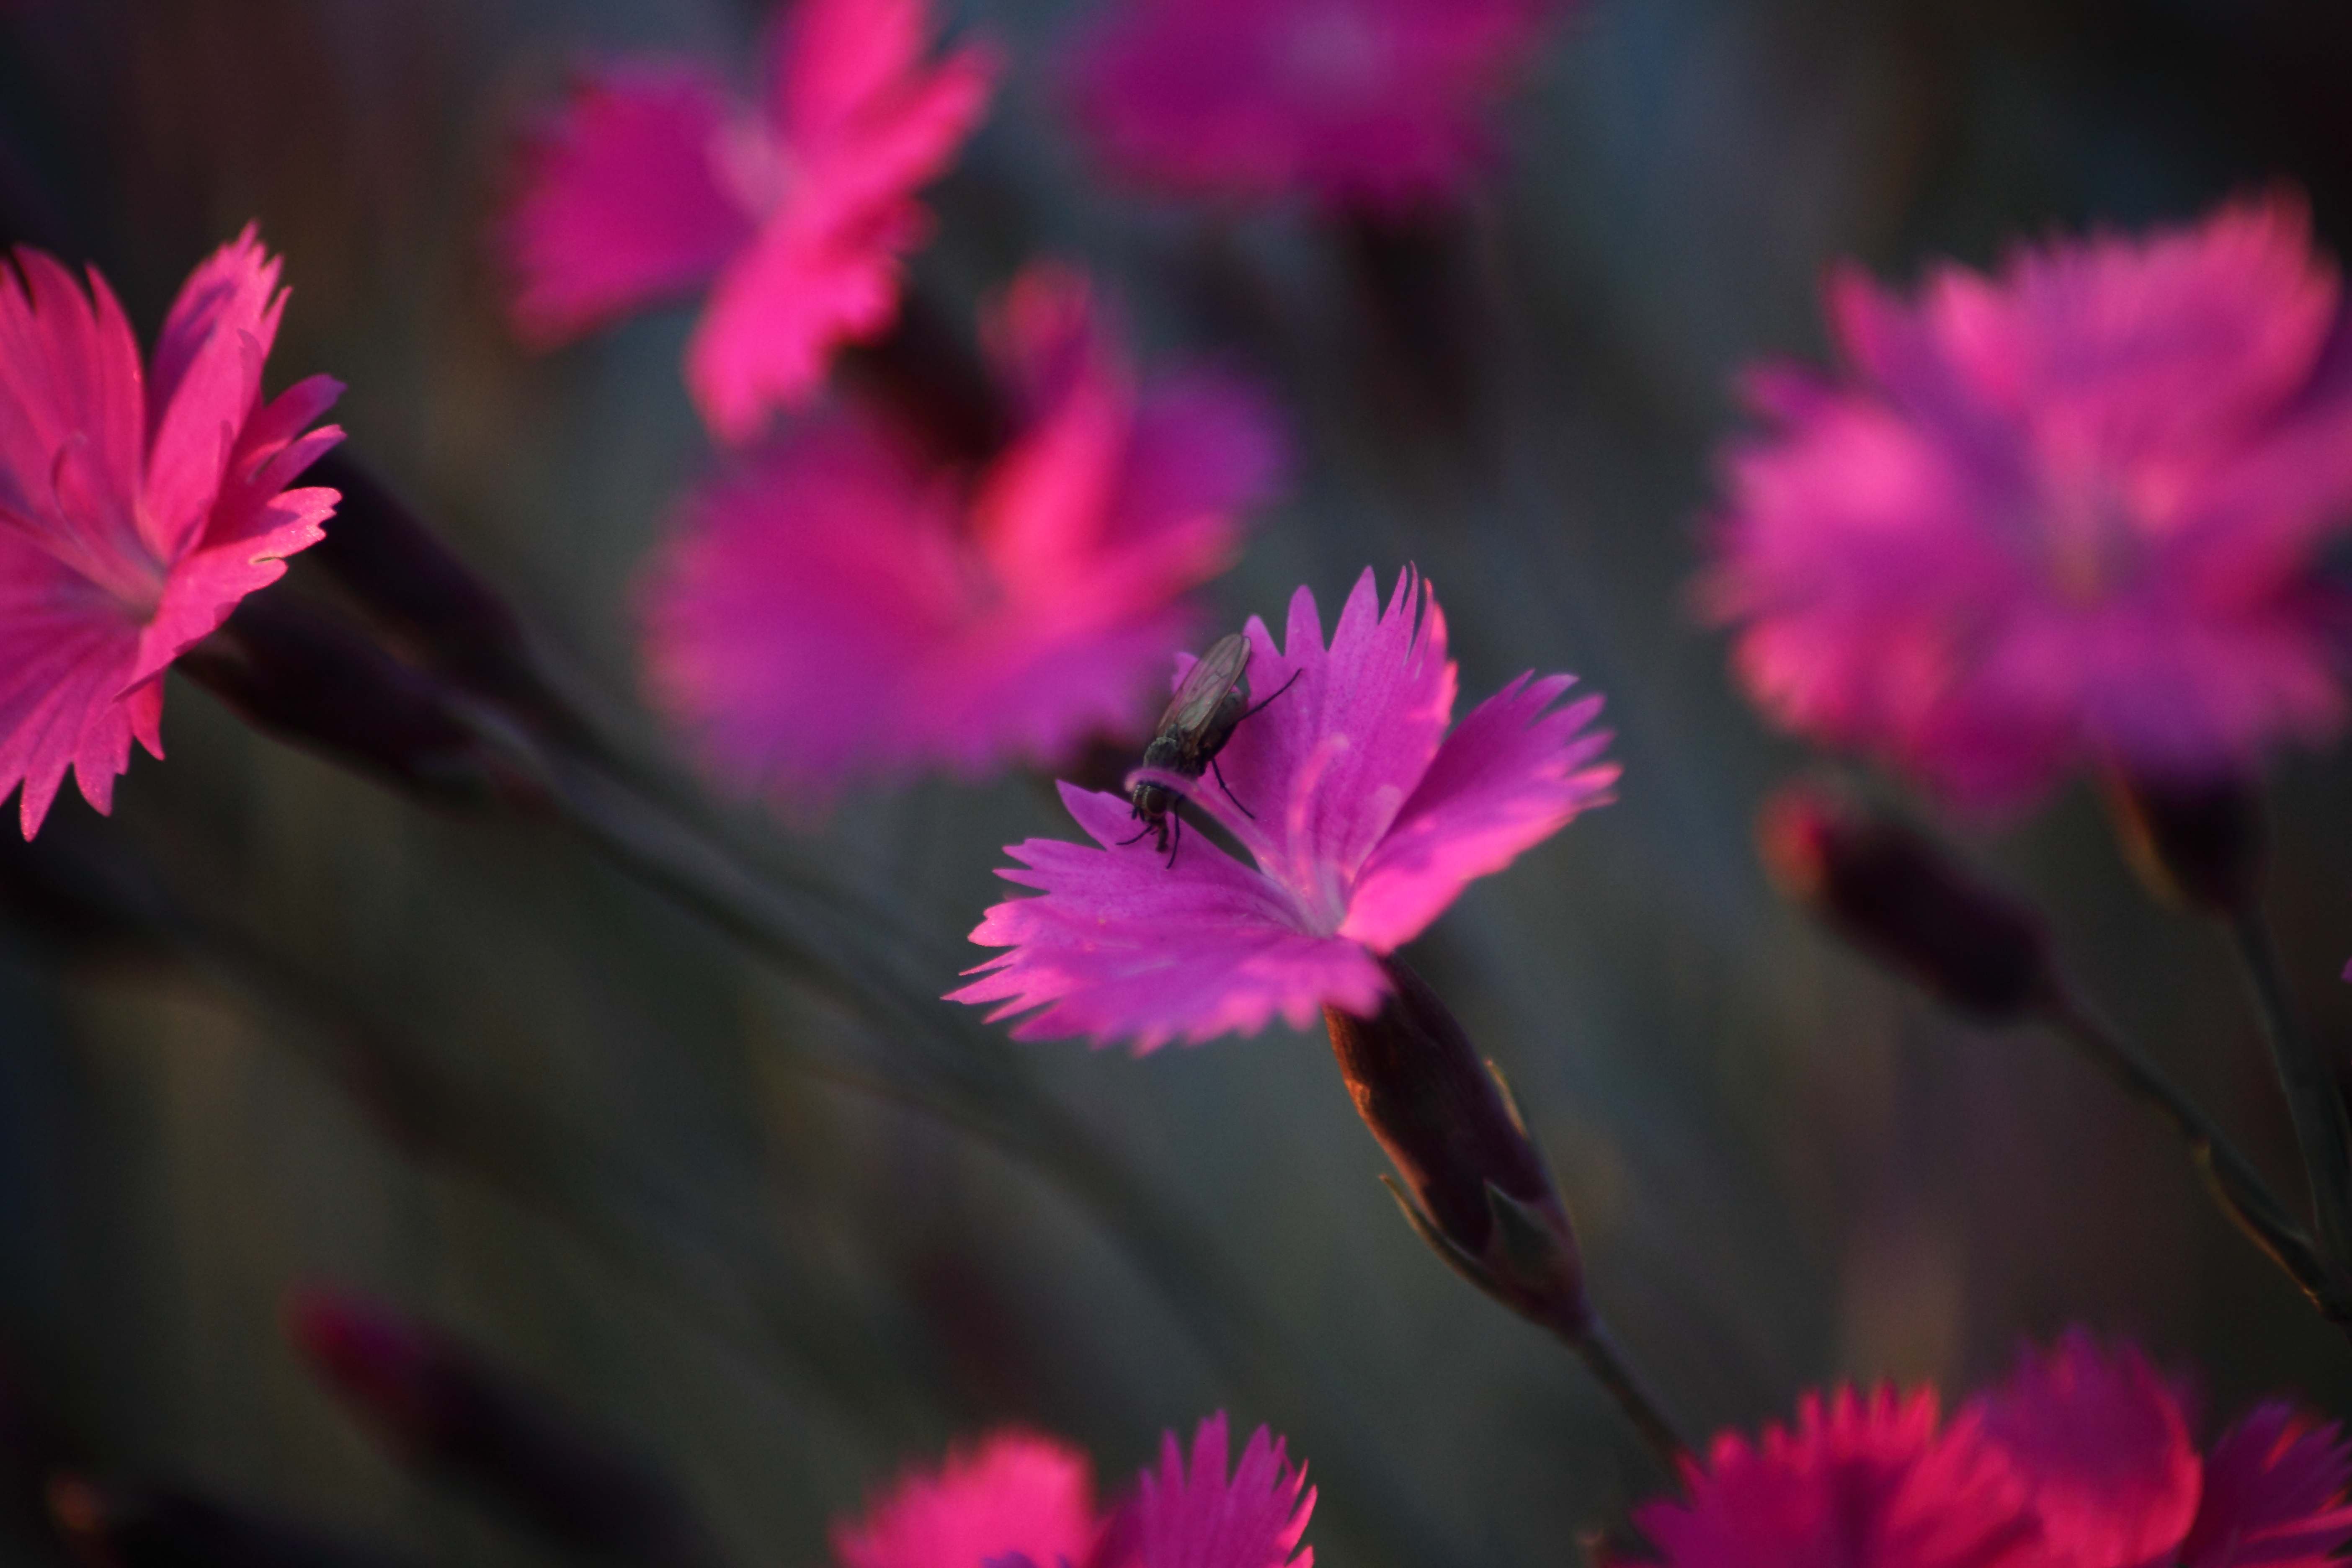 Dianthus Burningwitch Insect Fly Flower Wildlife Nature 5616x3744